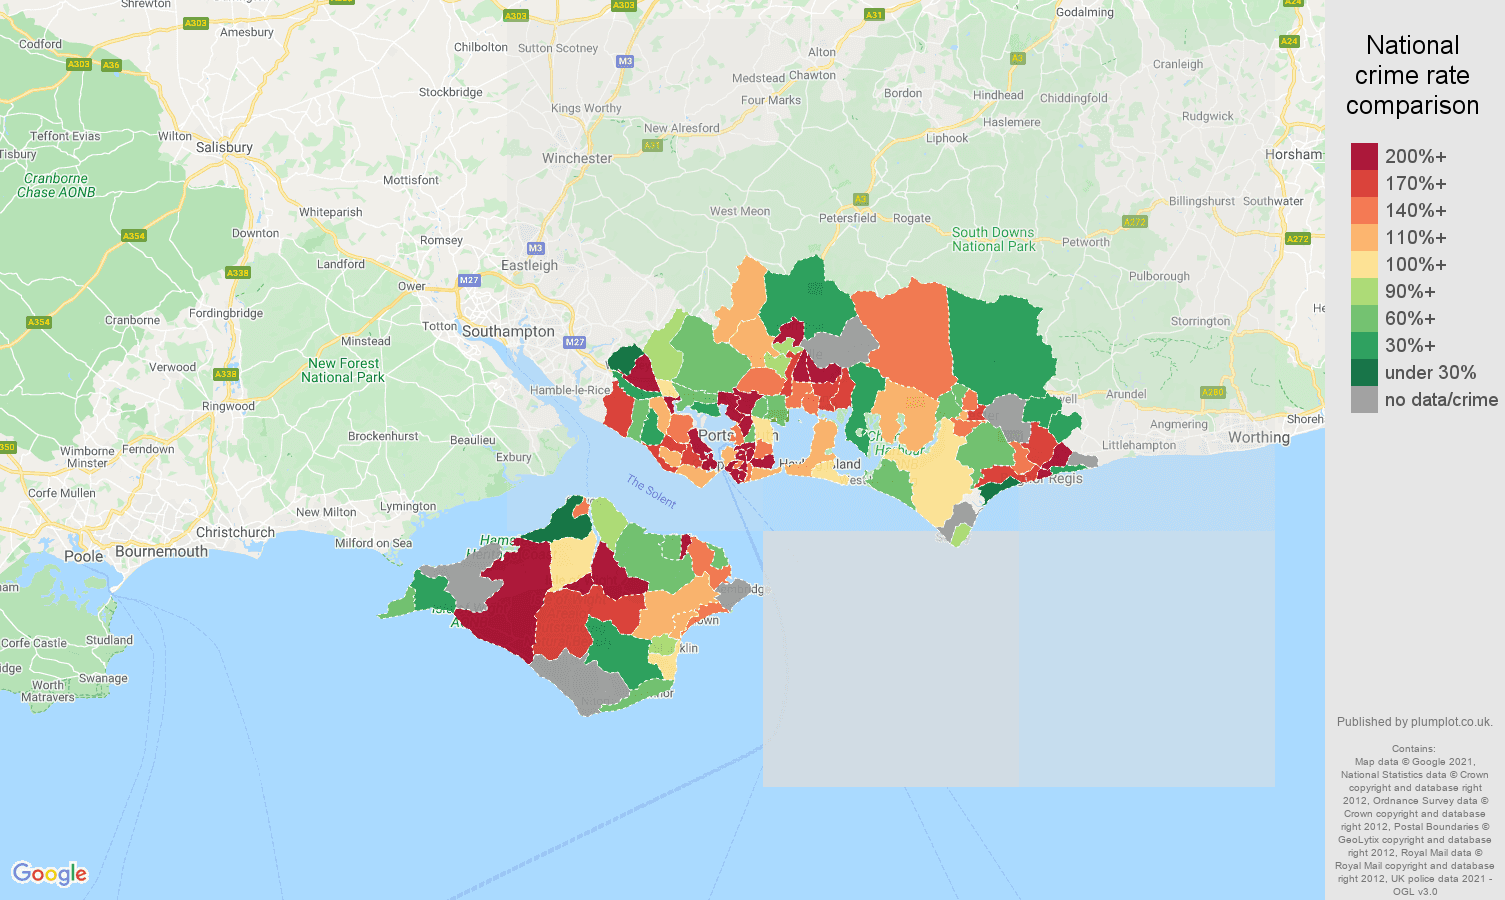 Portsmouth possession of weapons crime rate comparison map